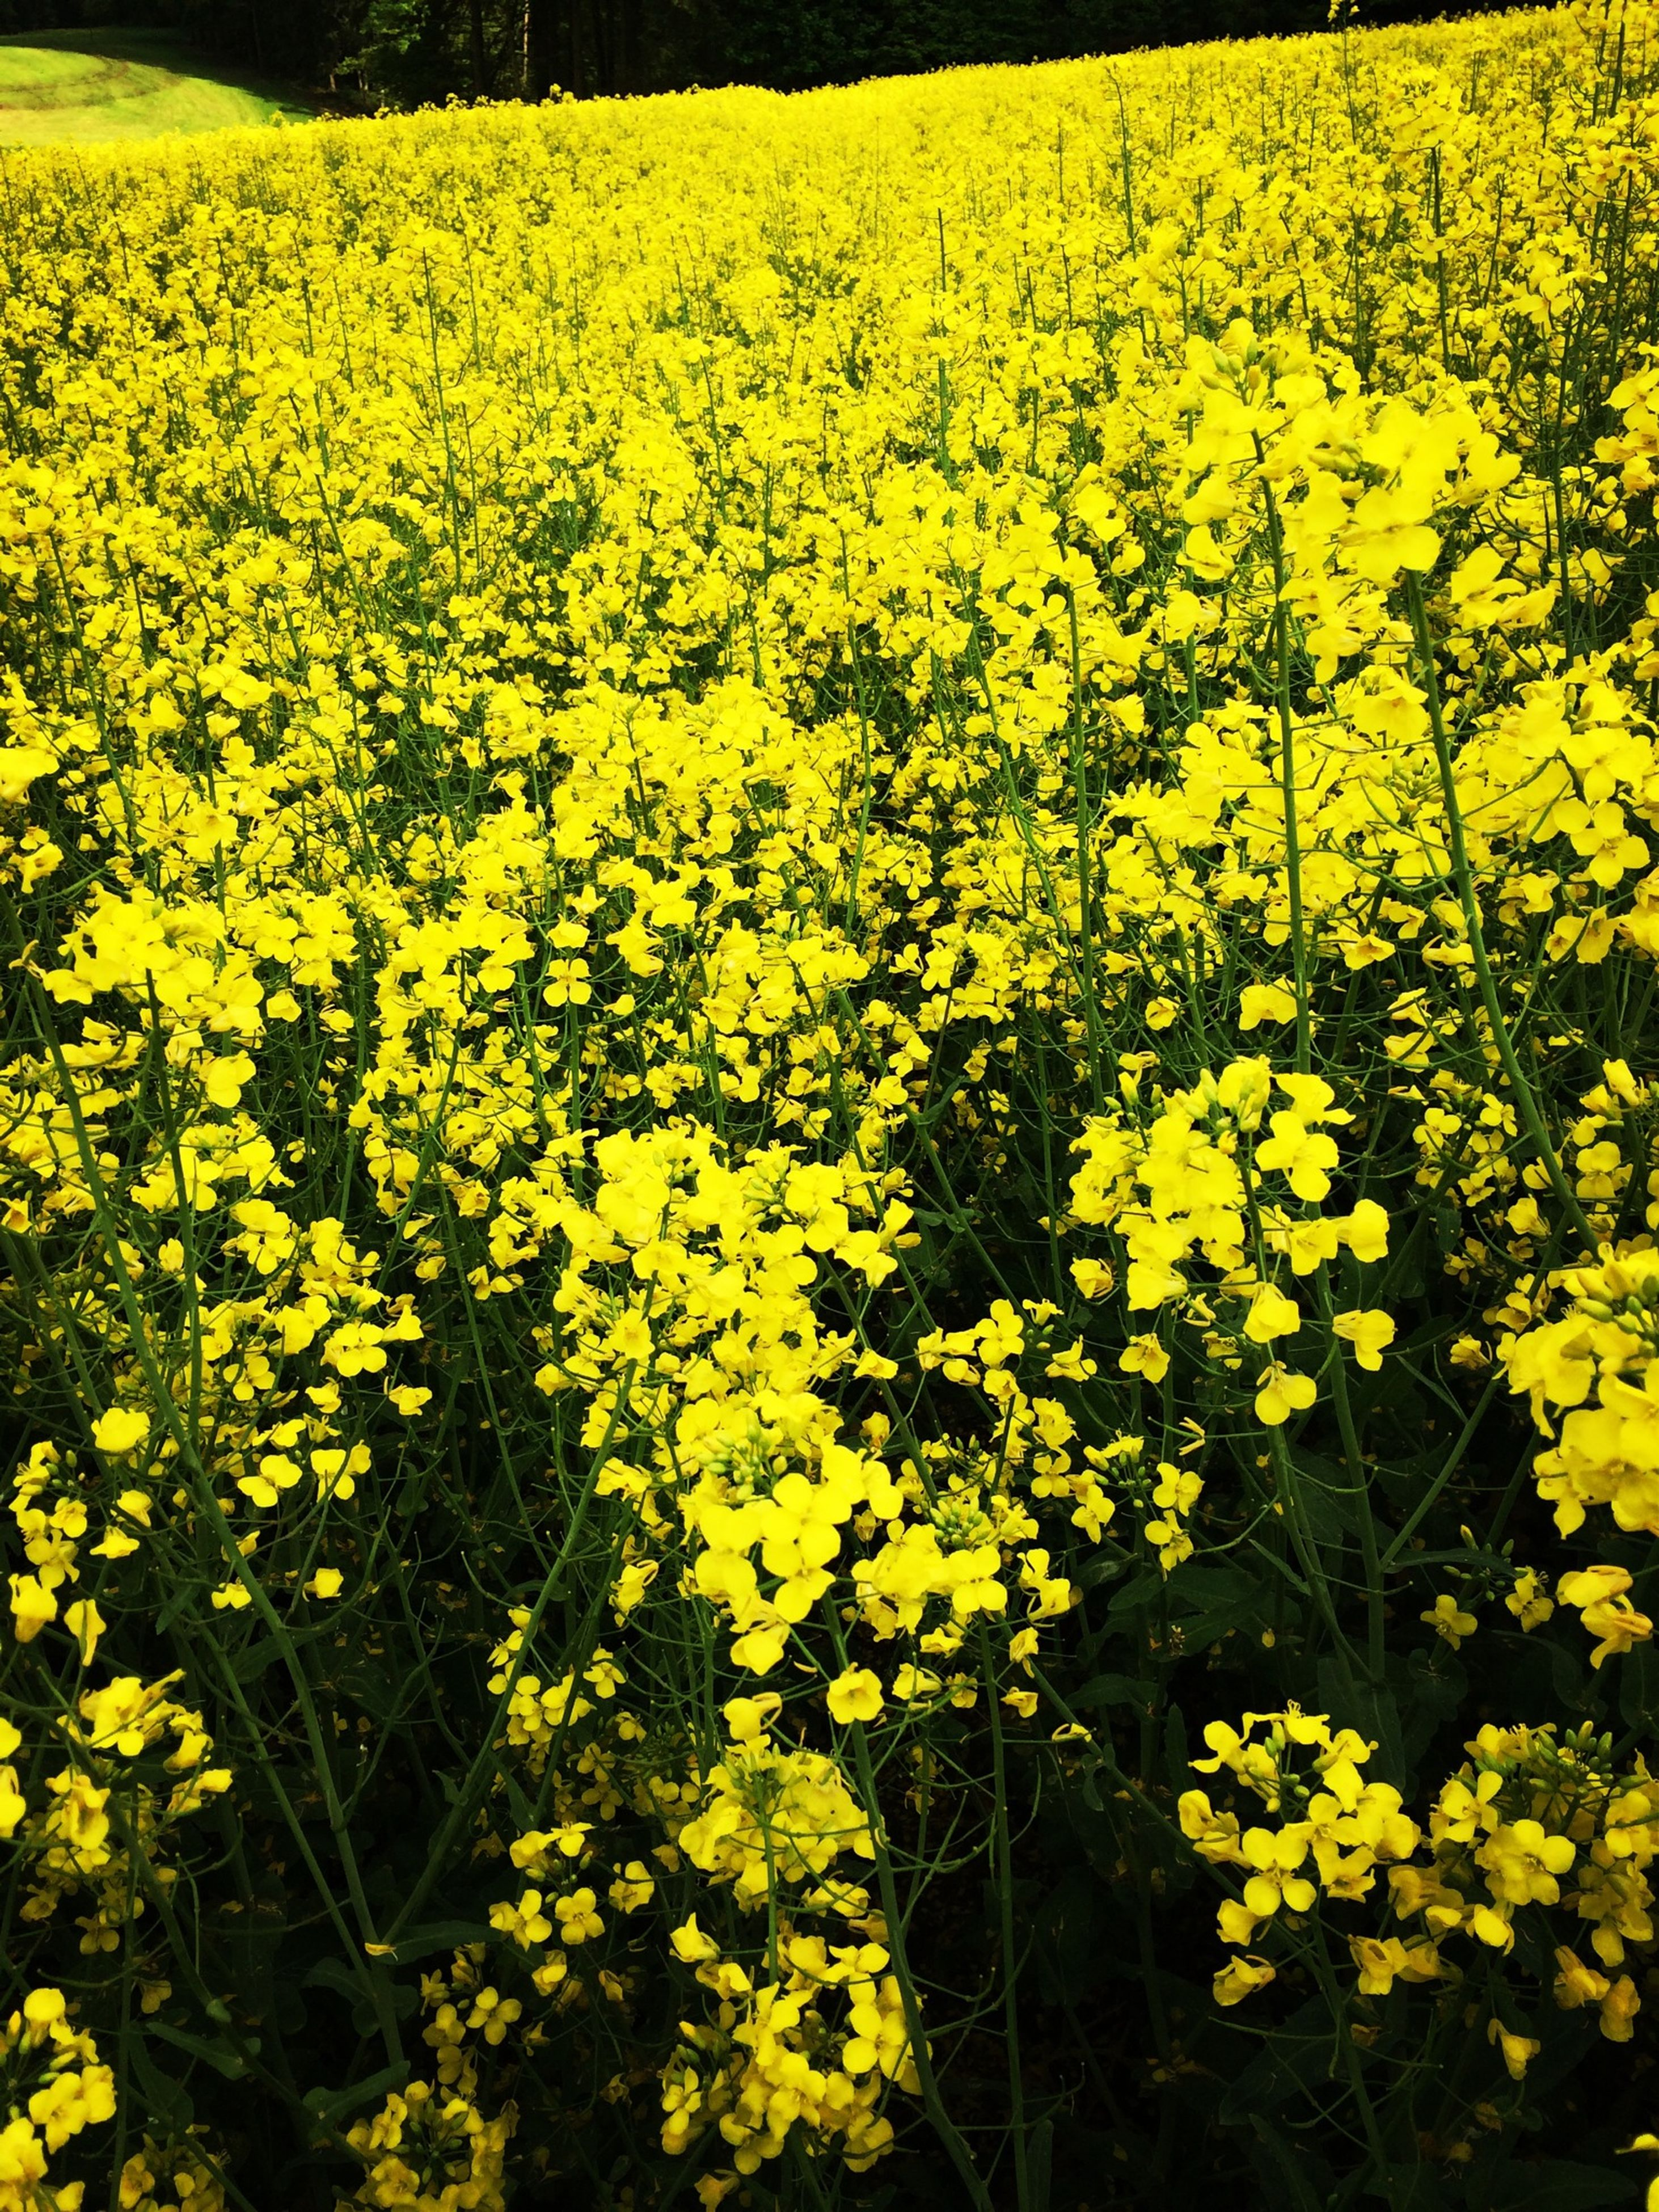 flower, yellow, freshness, growth, beauty in nature, fragility, full frame, abundance, nature, field, plant, backgrounds, blooming, petal, flower head, high angle view, agriculture, in bloom, outdoors, day